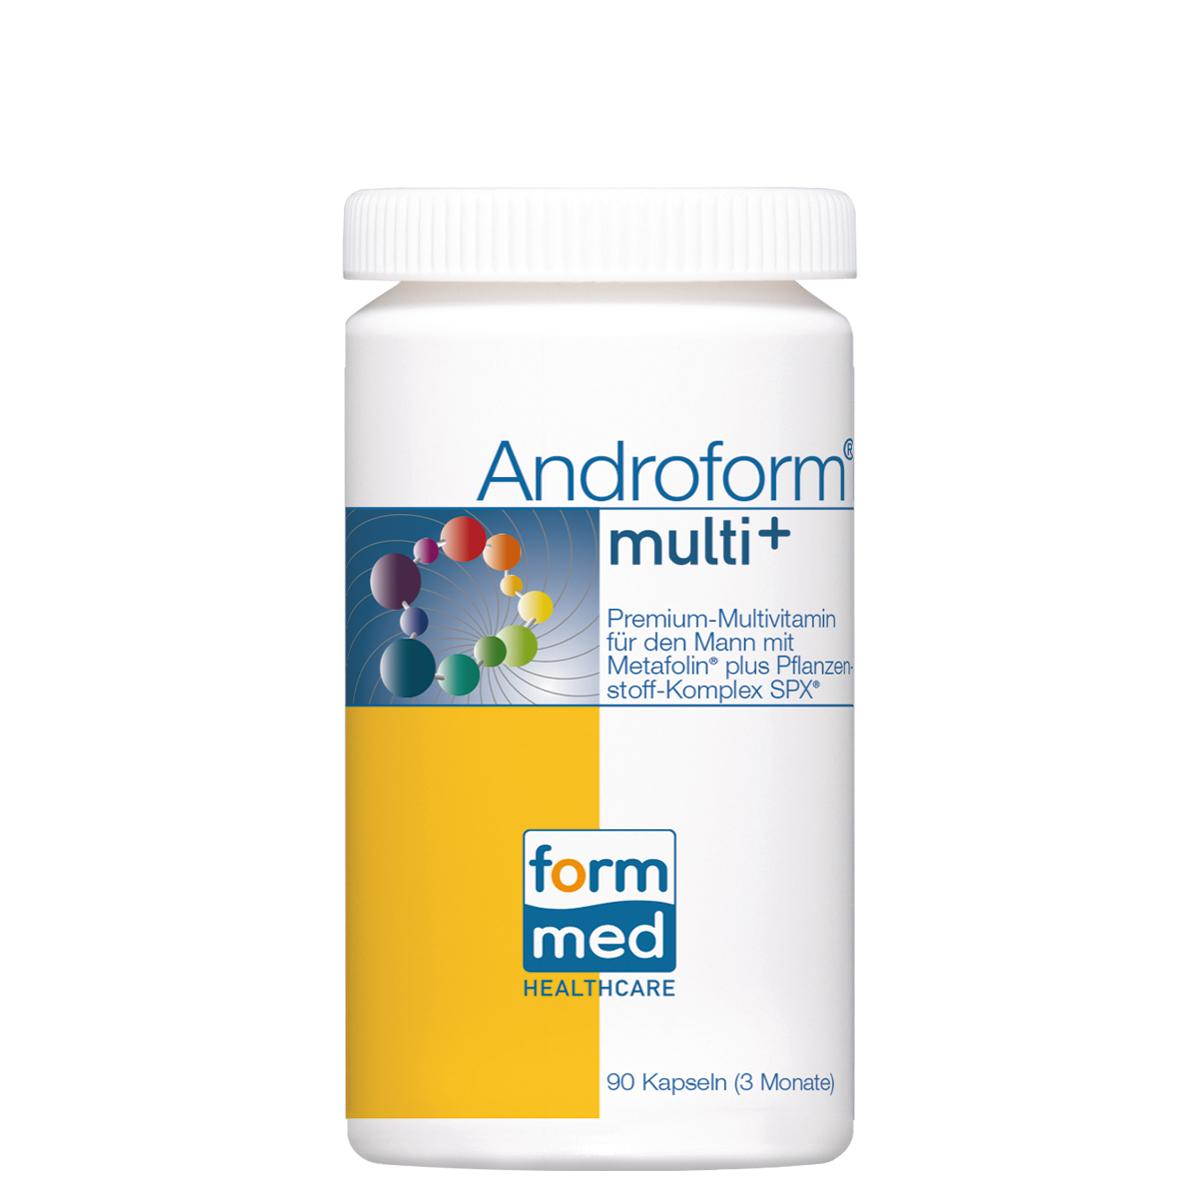 Androform® multi+